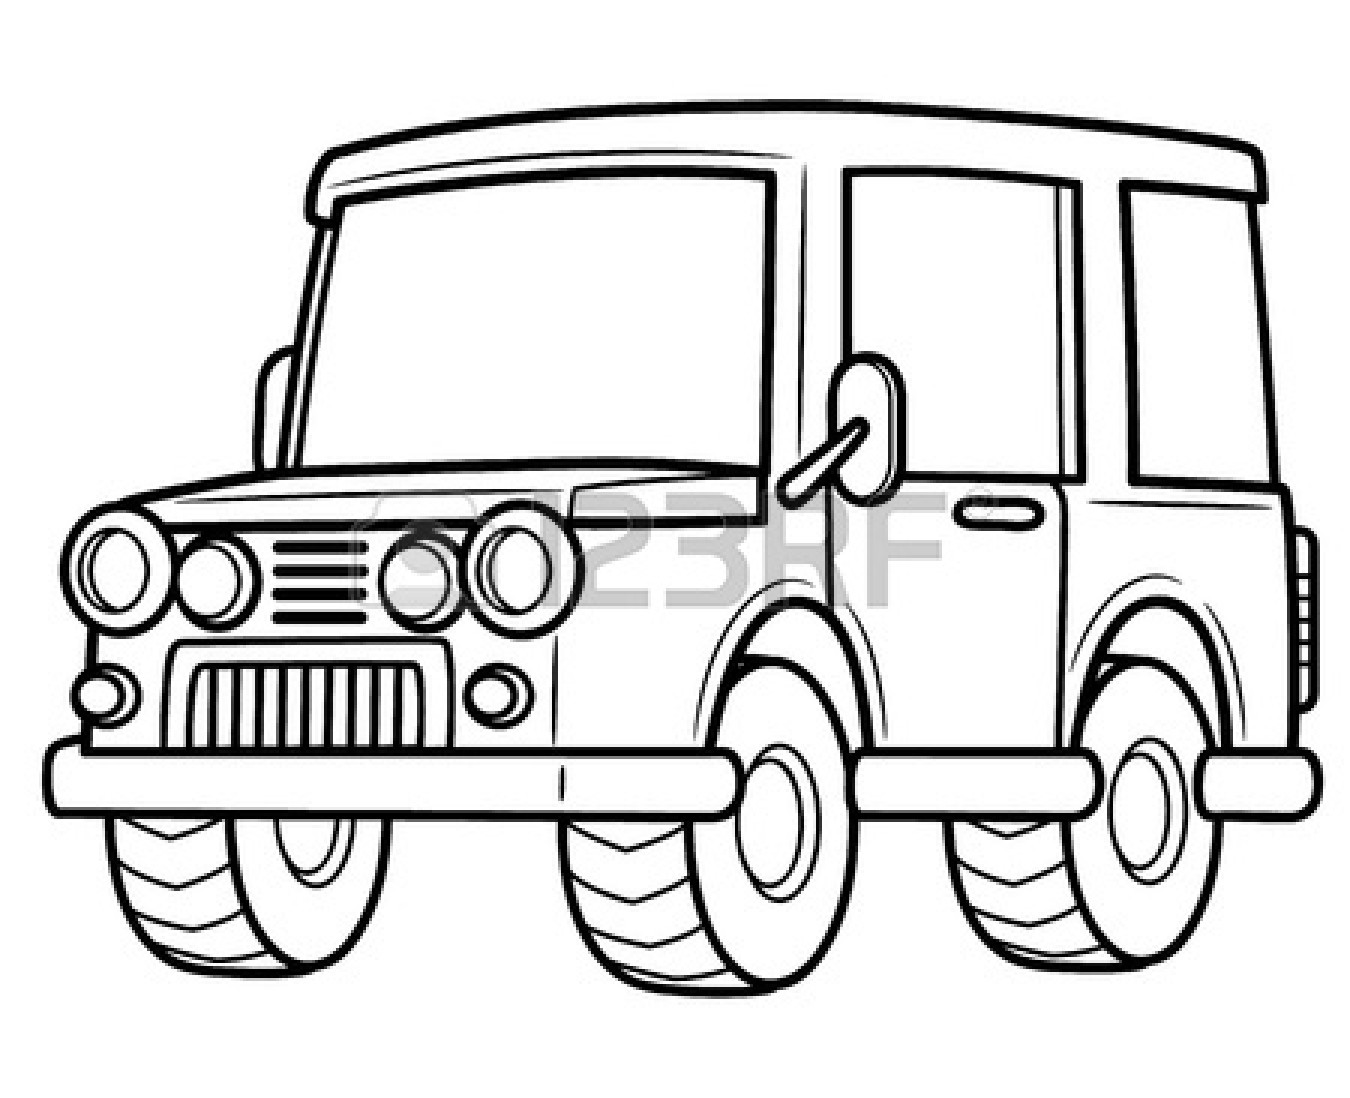 1350x1098 Truck Clipart Line Drawing